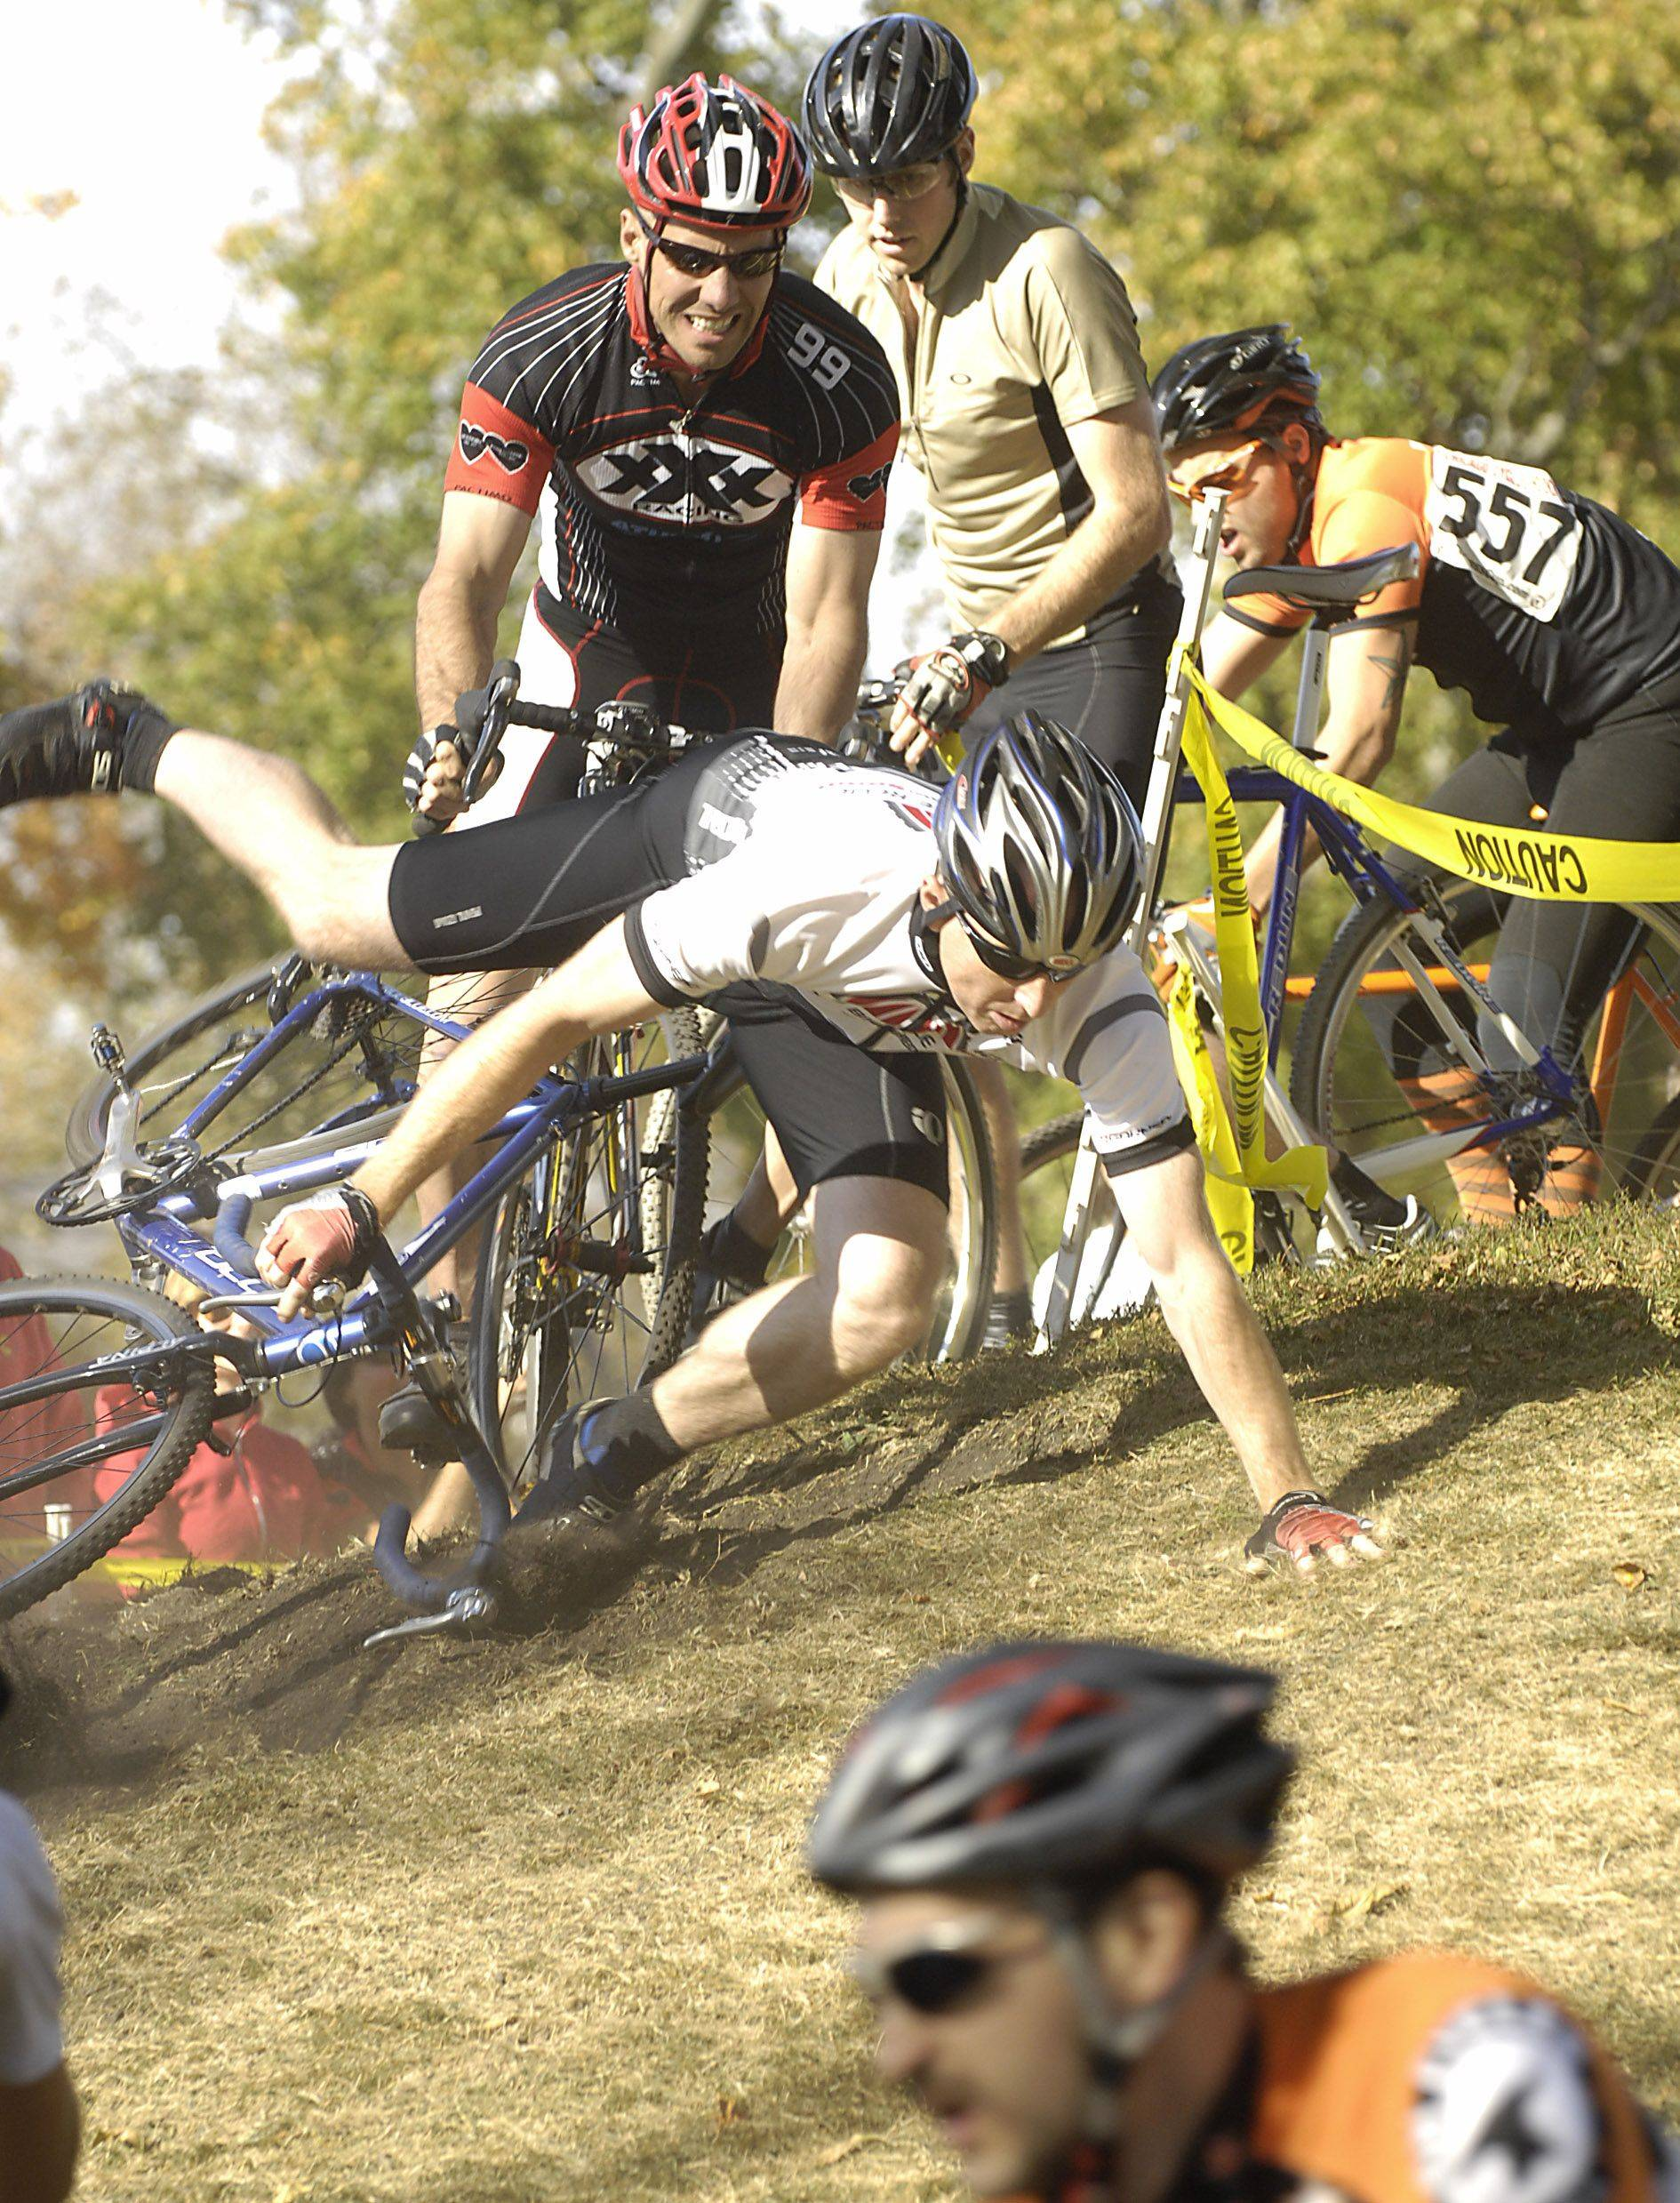 Michael Welch of Chicago crashes on Heckle Hill at Sunday's fifth stop of the Chicago Cyclocross at Carpenters Park in Carpentersville.